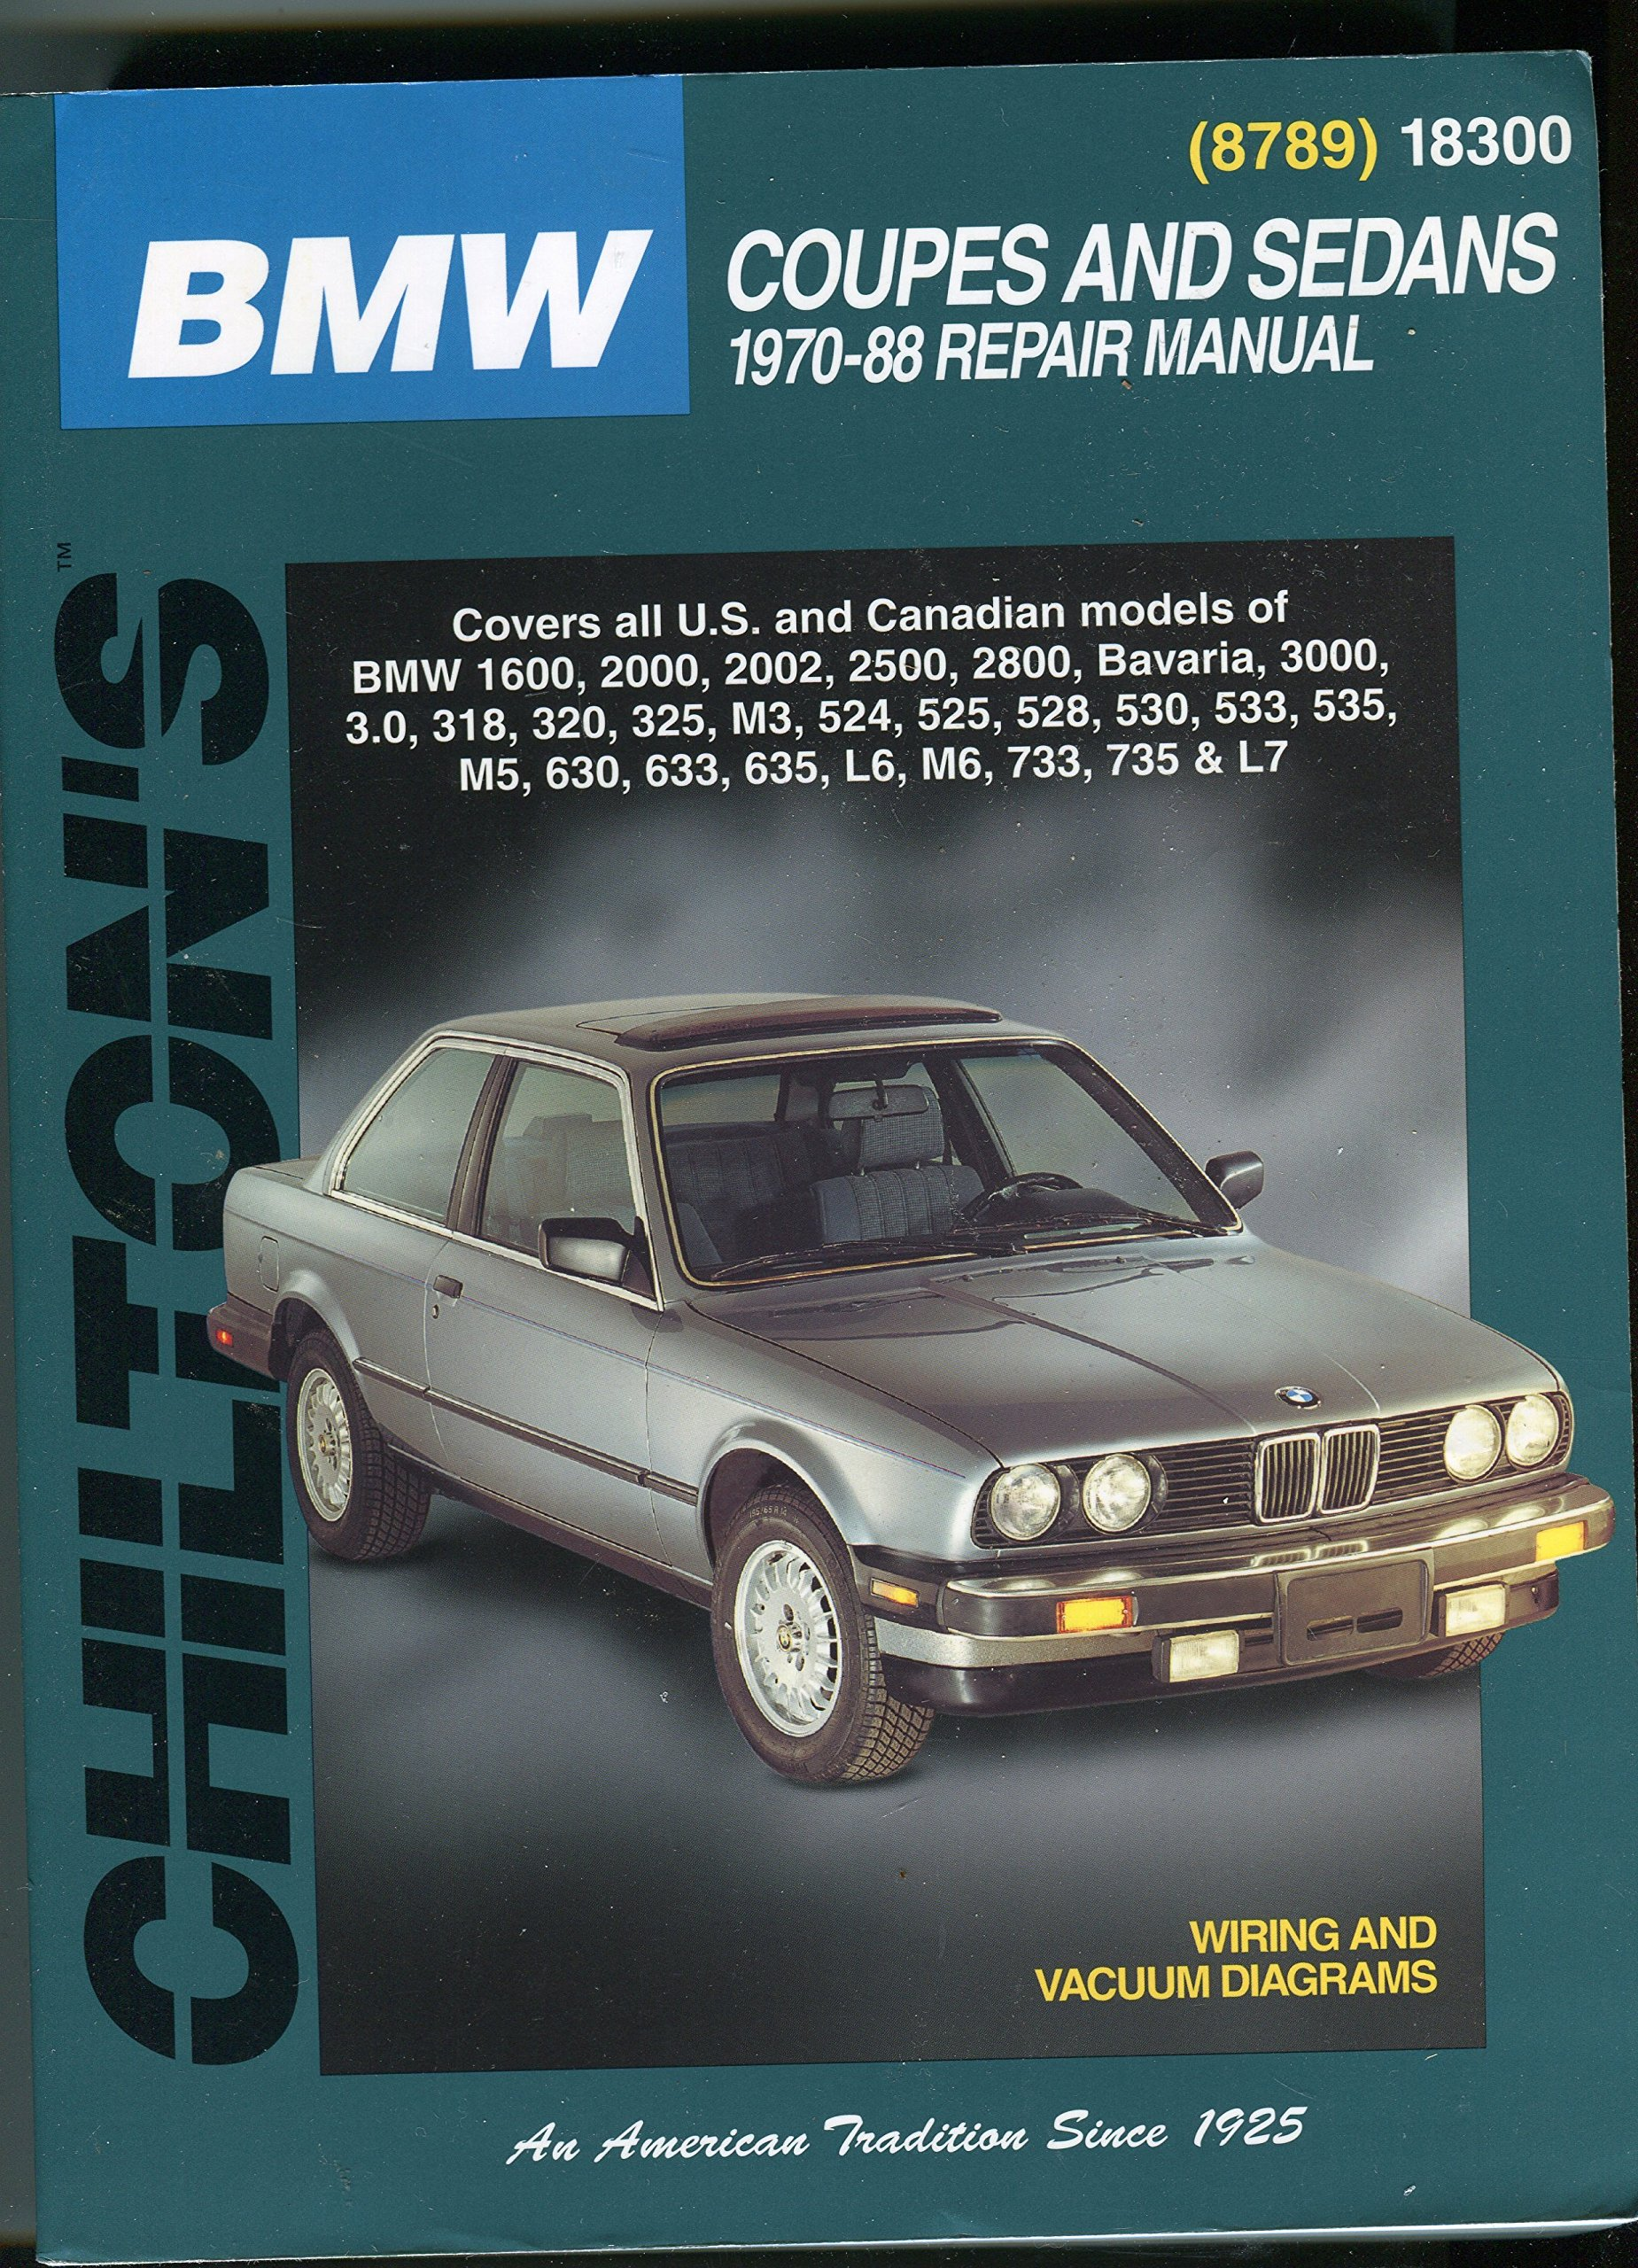 Chilton 18300 Repair Manual (only 6 Remaining): BMW: 0035675087896:  Amazon.com: Books